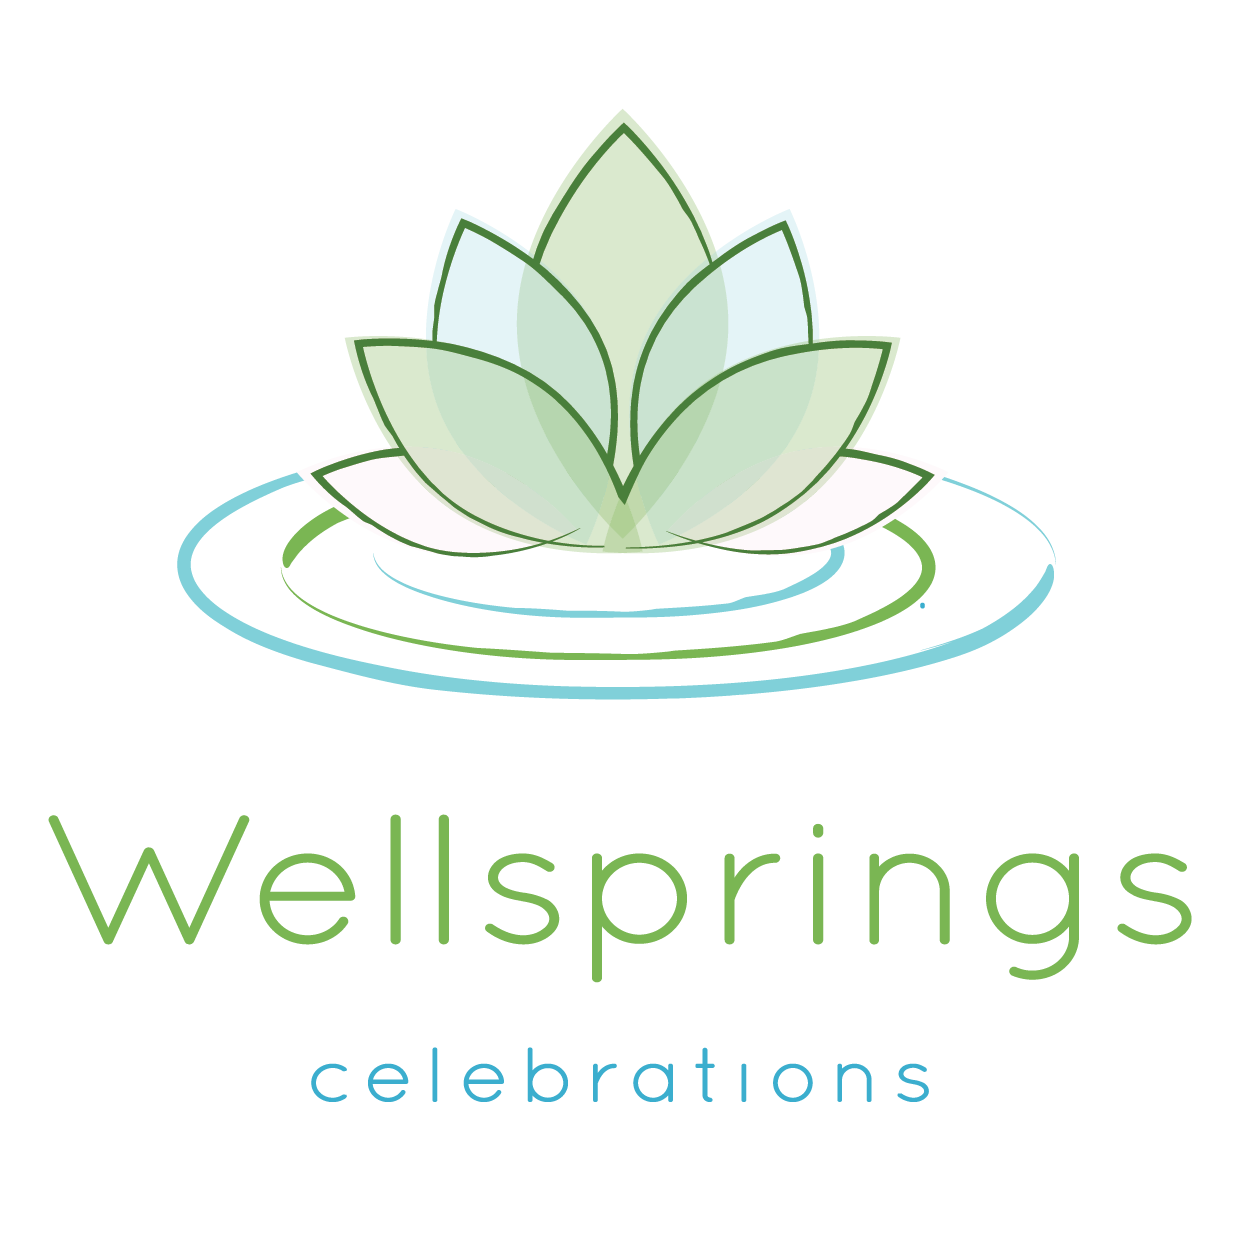 Wellsprings Celebrations